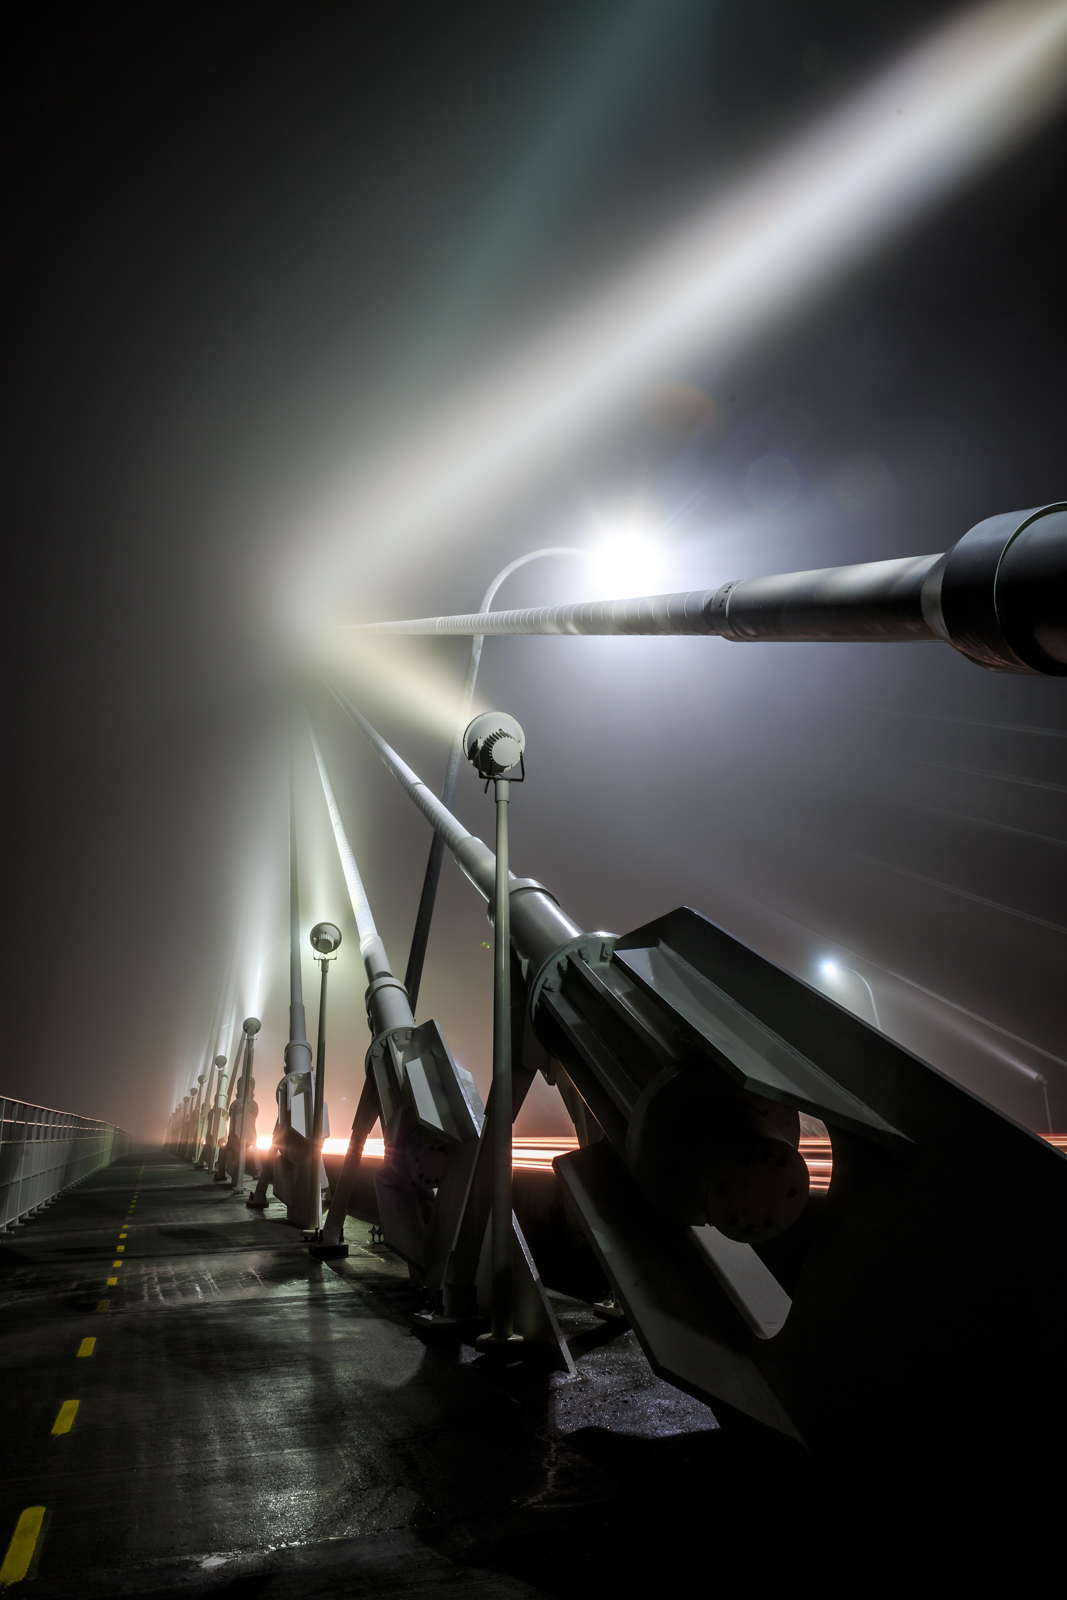 HONORABLE MENTION Professional category: Ravenel Bridge in the Mist by Justin Falk